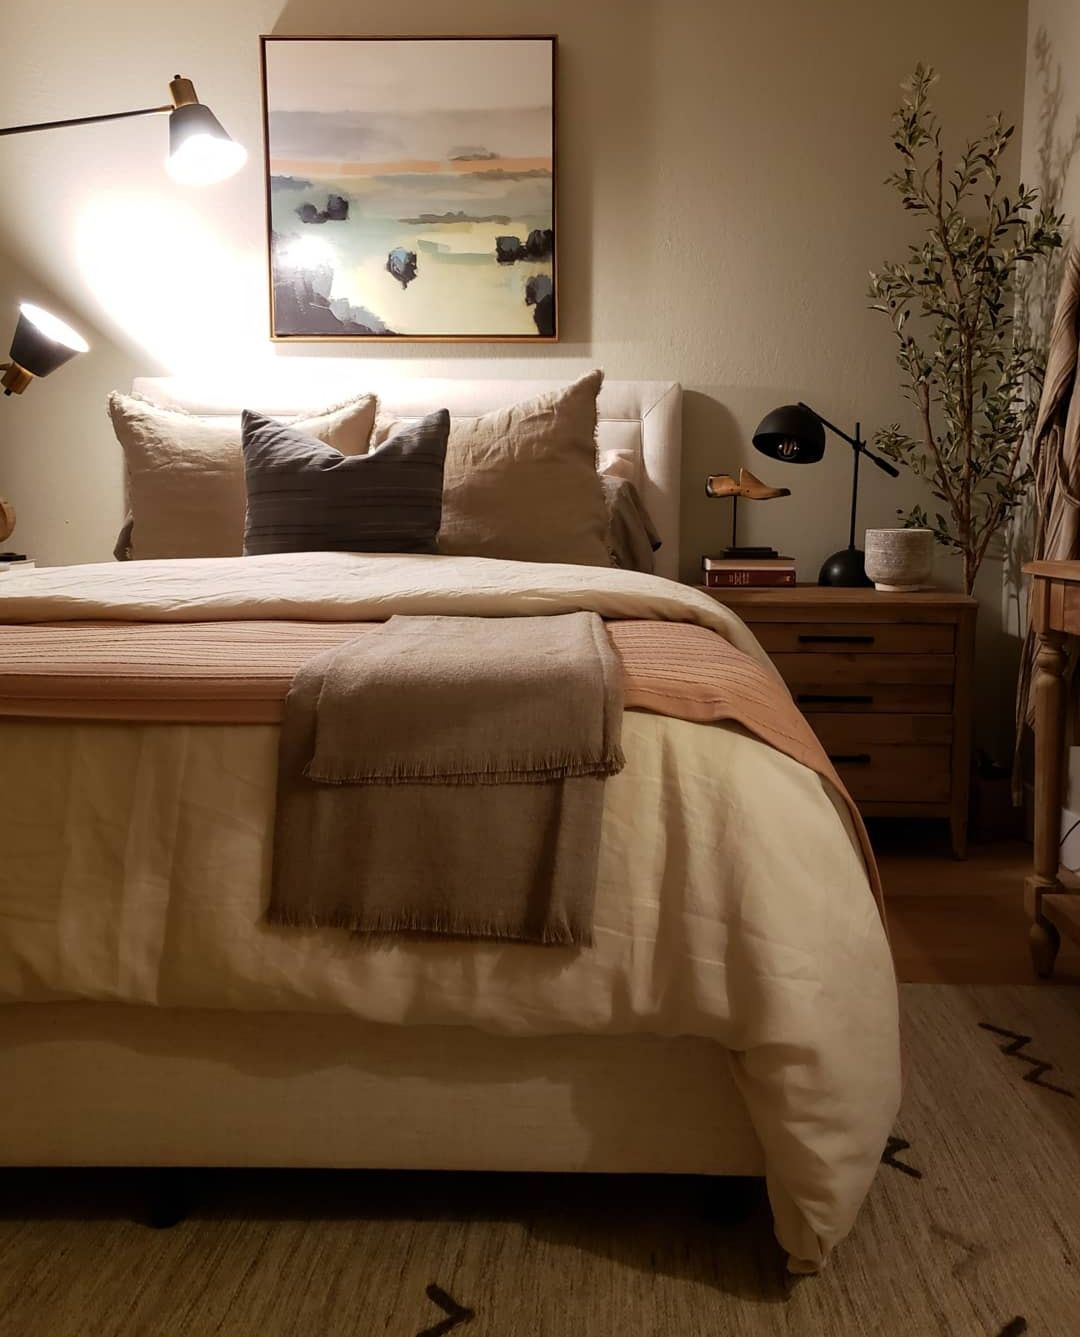 Cosy Bedroom Ideas For A Restful Retreat: A Summer Retreat For Our Guests With The Company Store